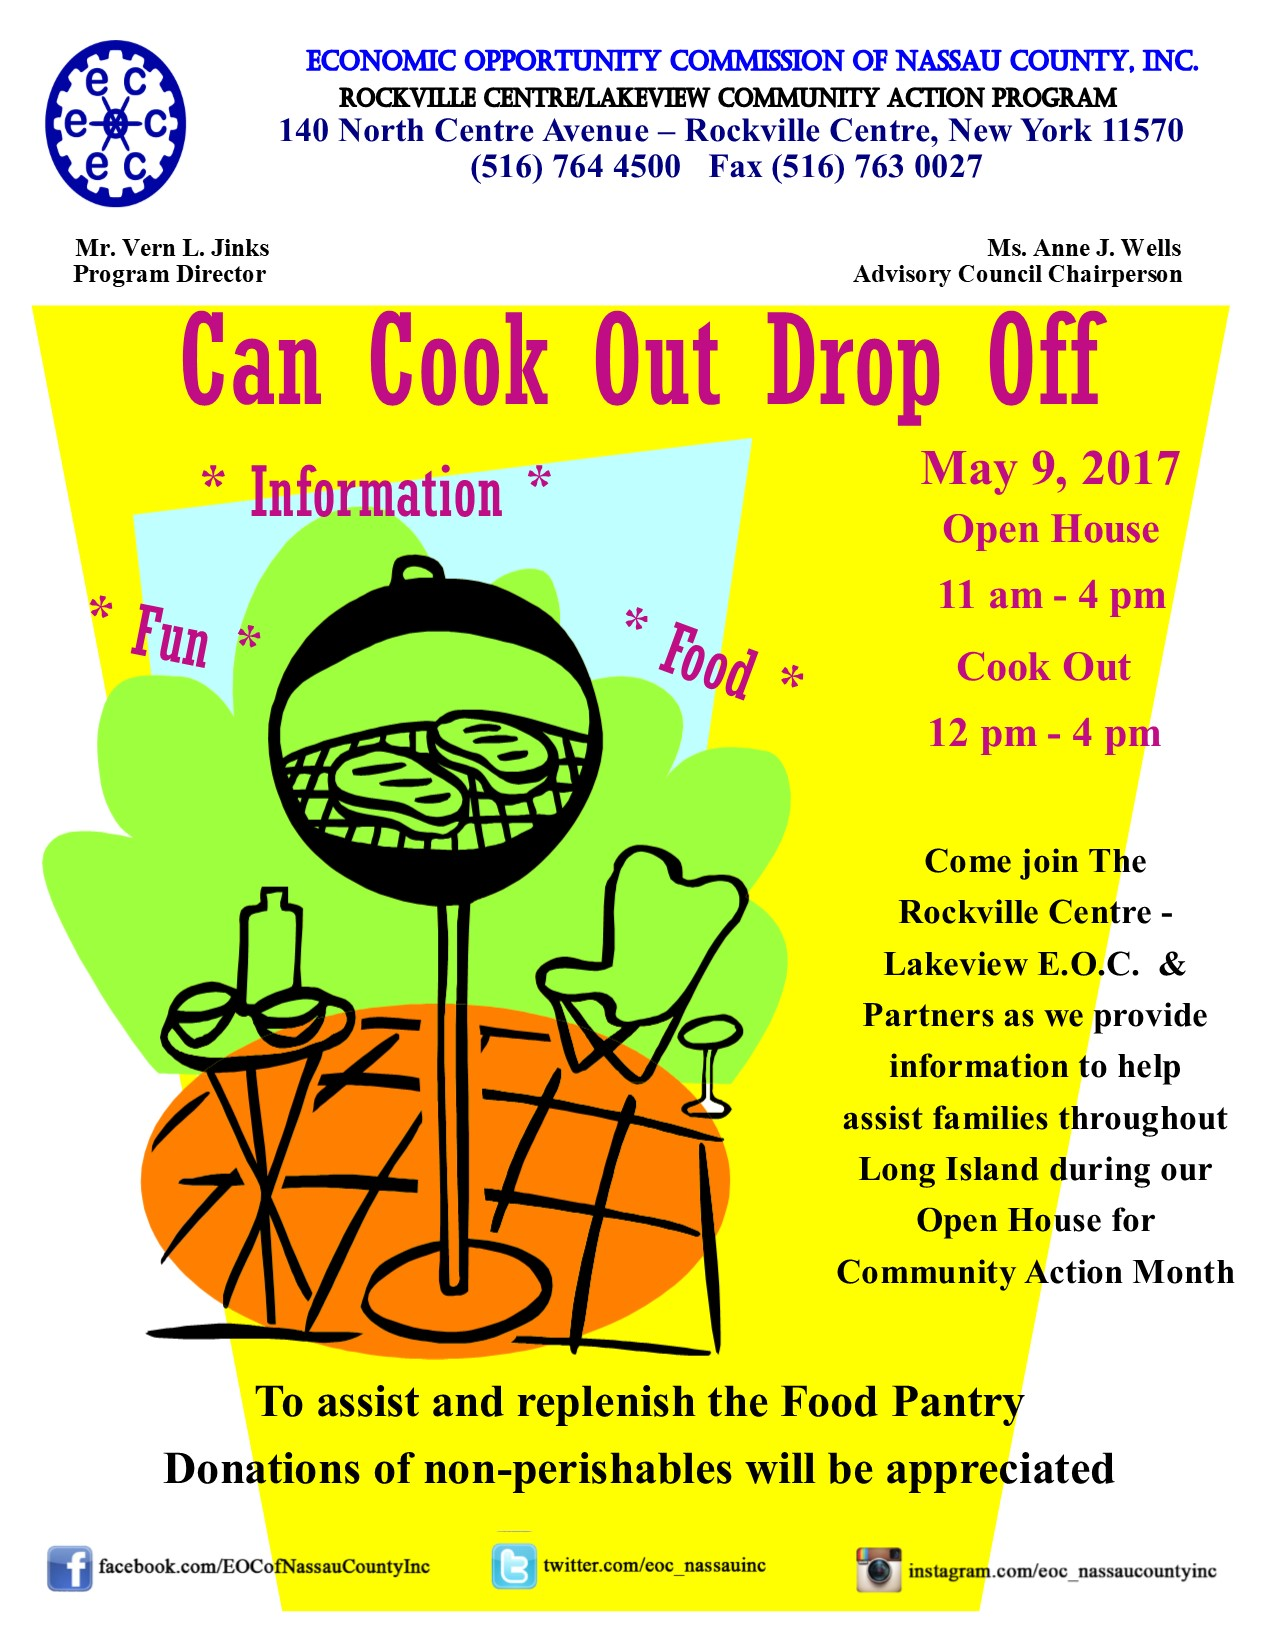 New york nassau county rockville centre - Rockville Centre Lakeview Eoc Open House Cook Out Can Drop Off Eoc Of Nassau County Inc Welcome